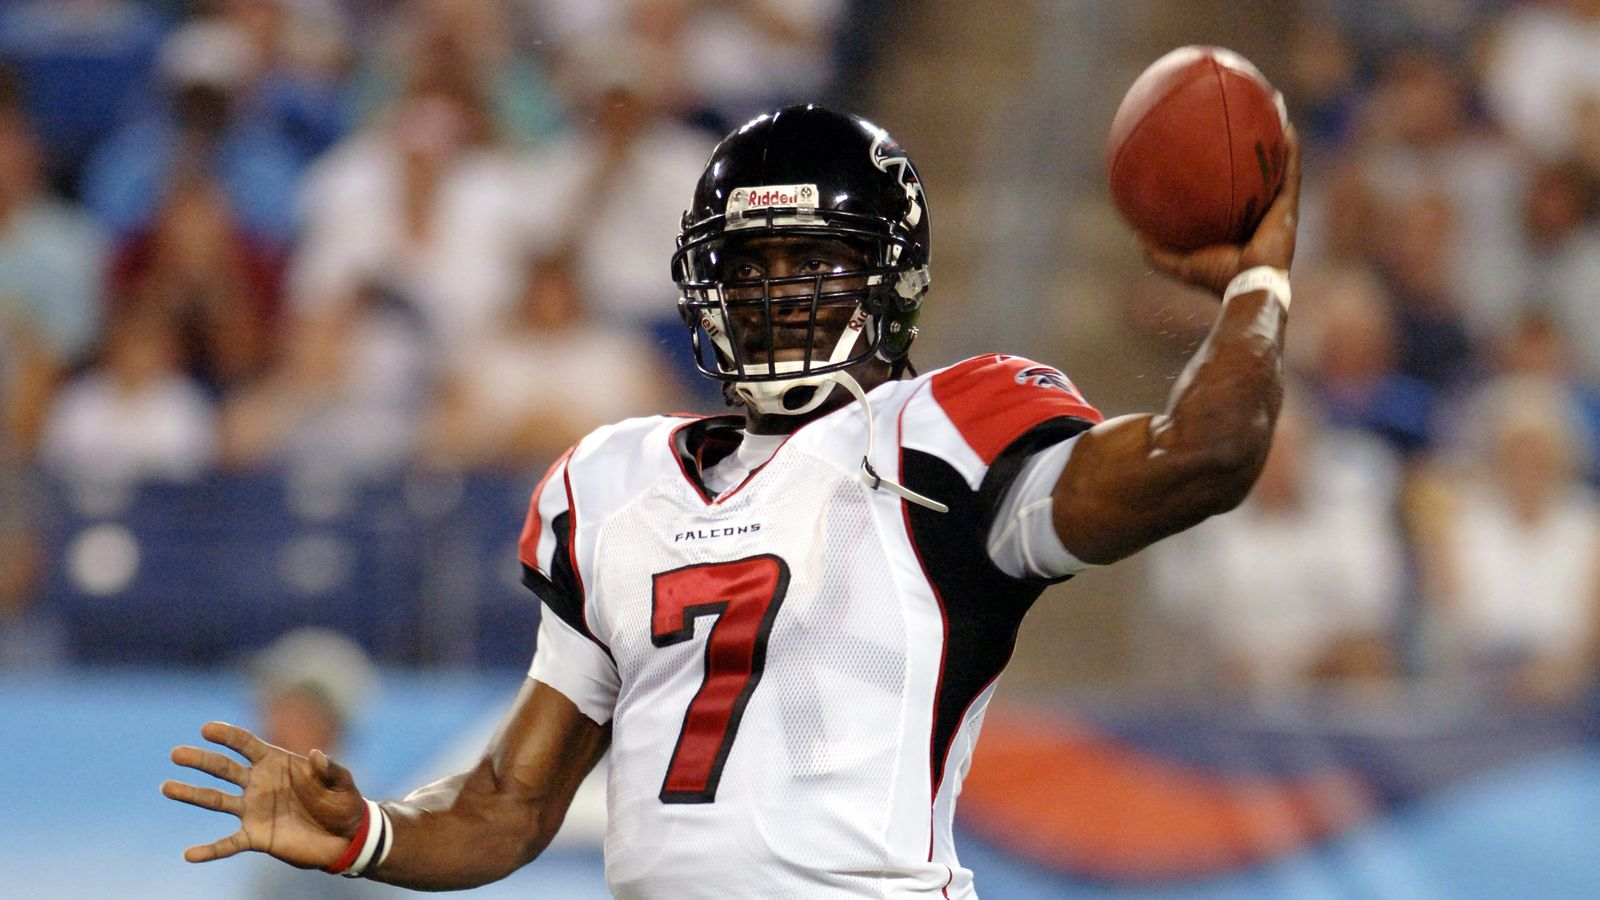 Michael_20vick_20by_20joe_20murphy_20getty_20images_20.0